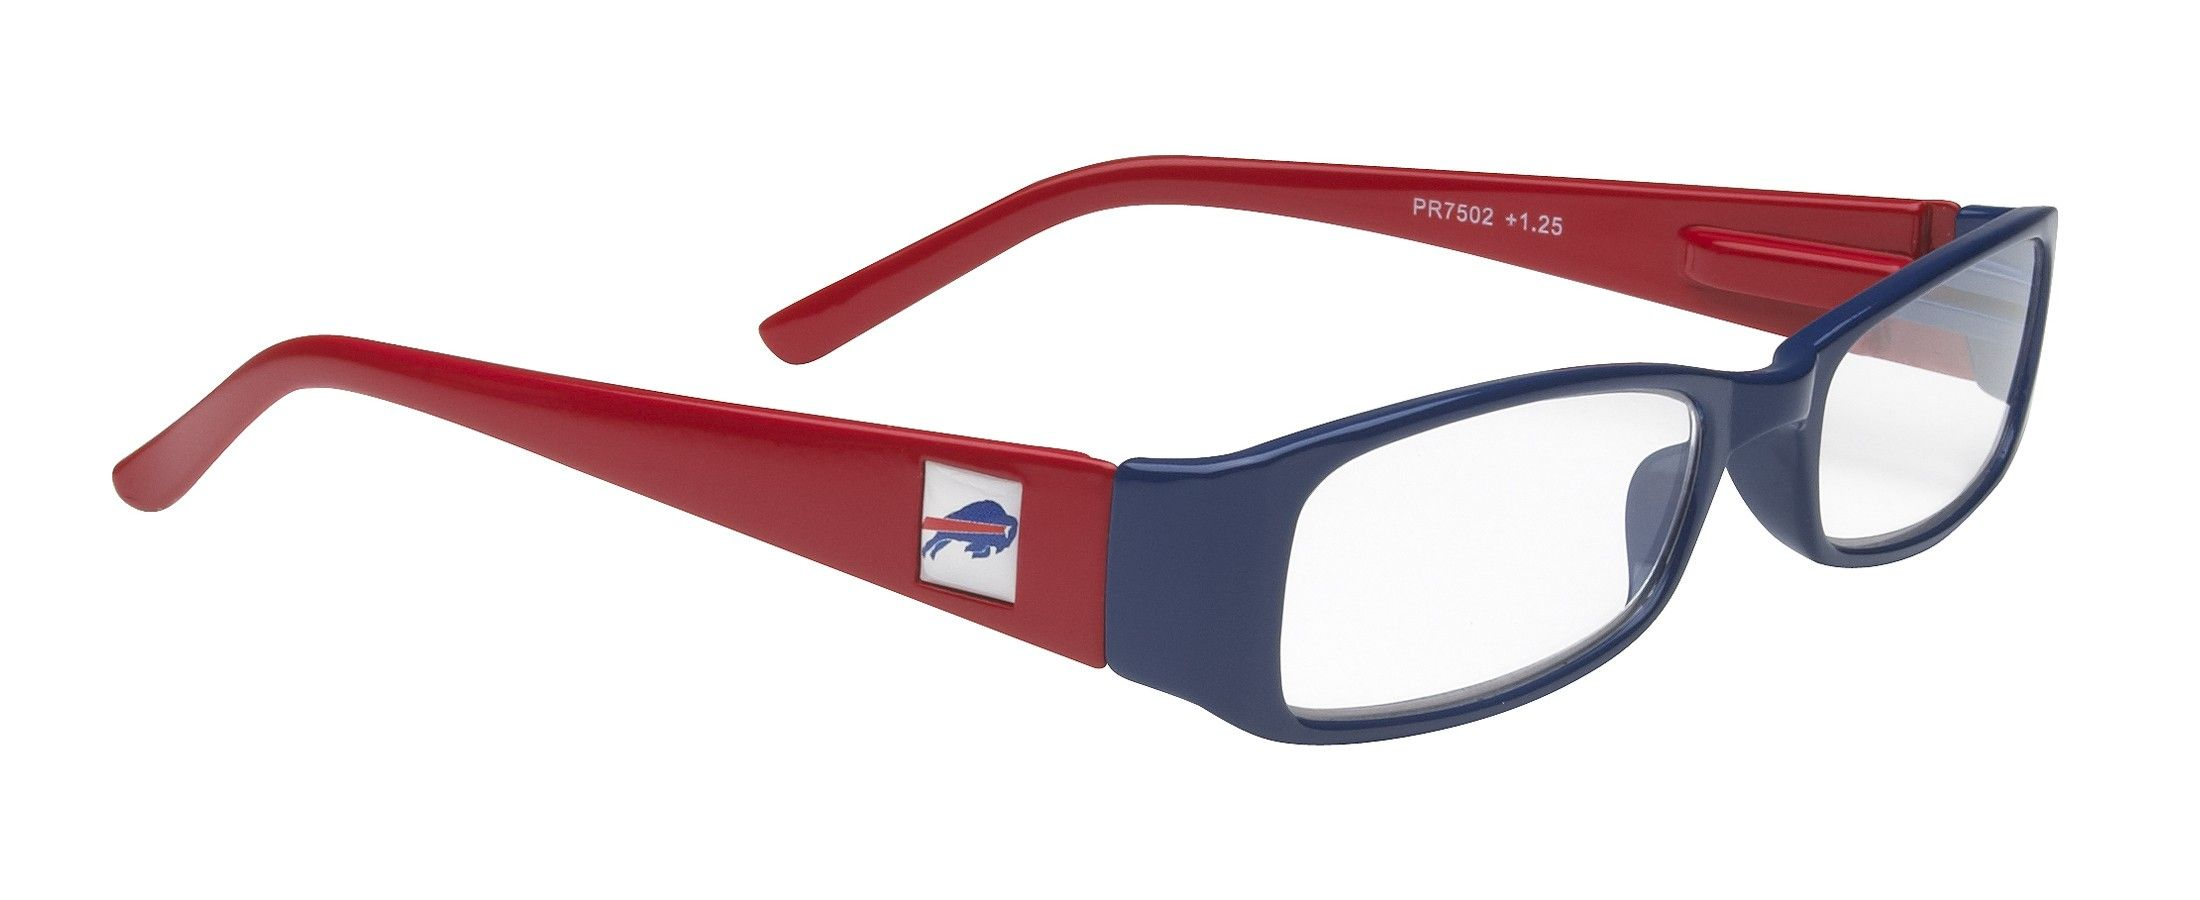 77f99387 NFL Buffalo Bills Reading Glasses, Red and Black Frame with Logo ...